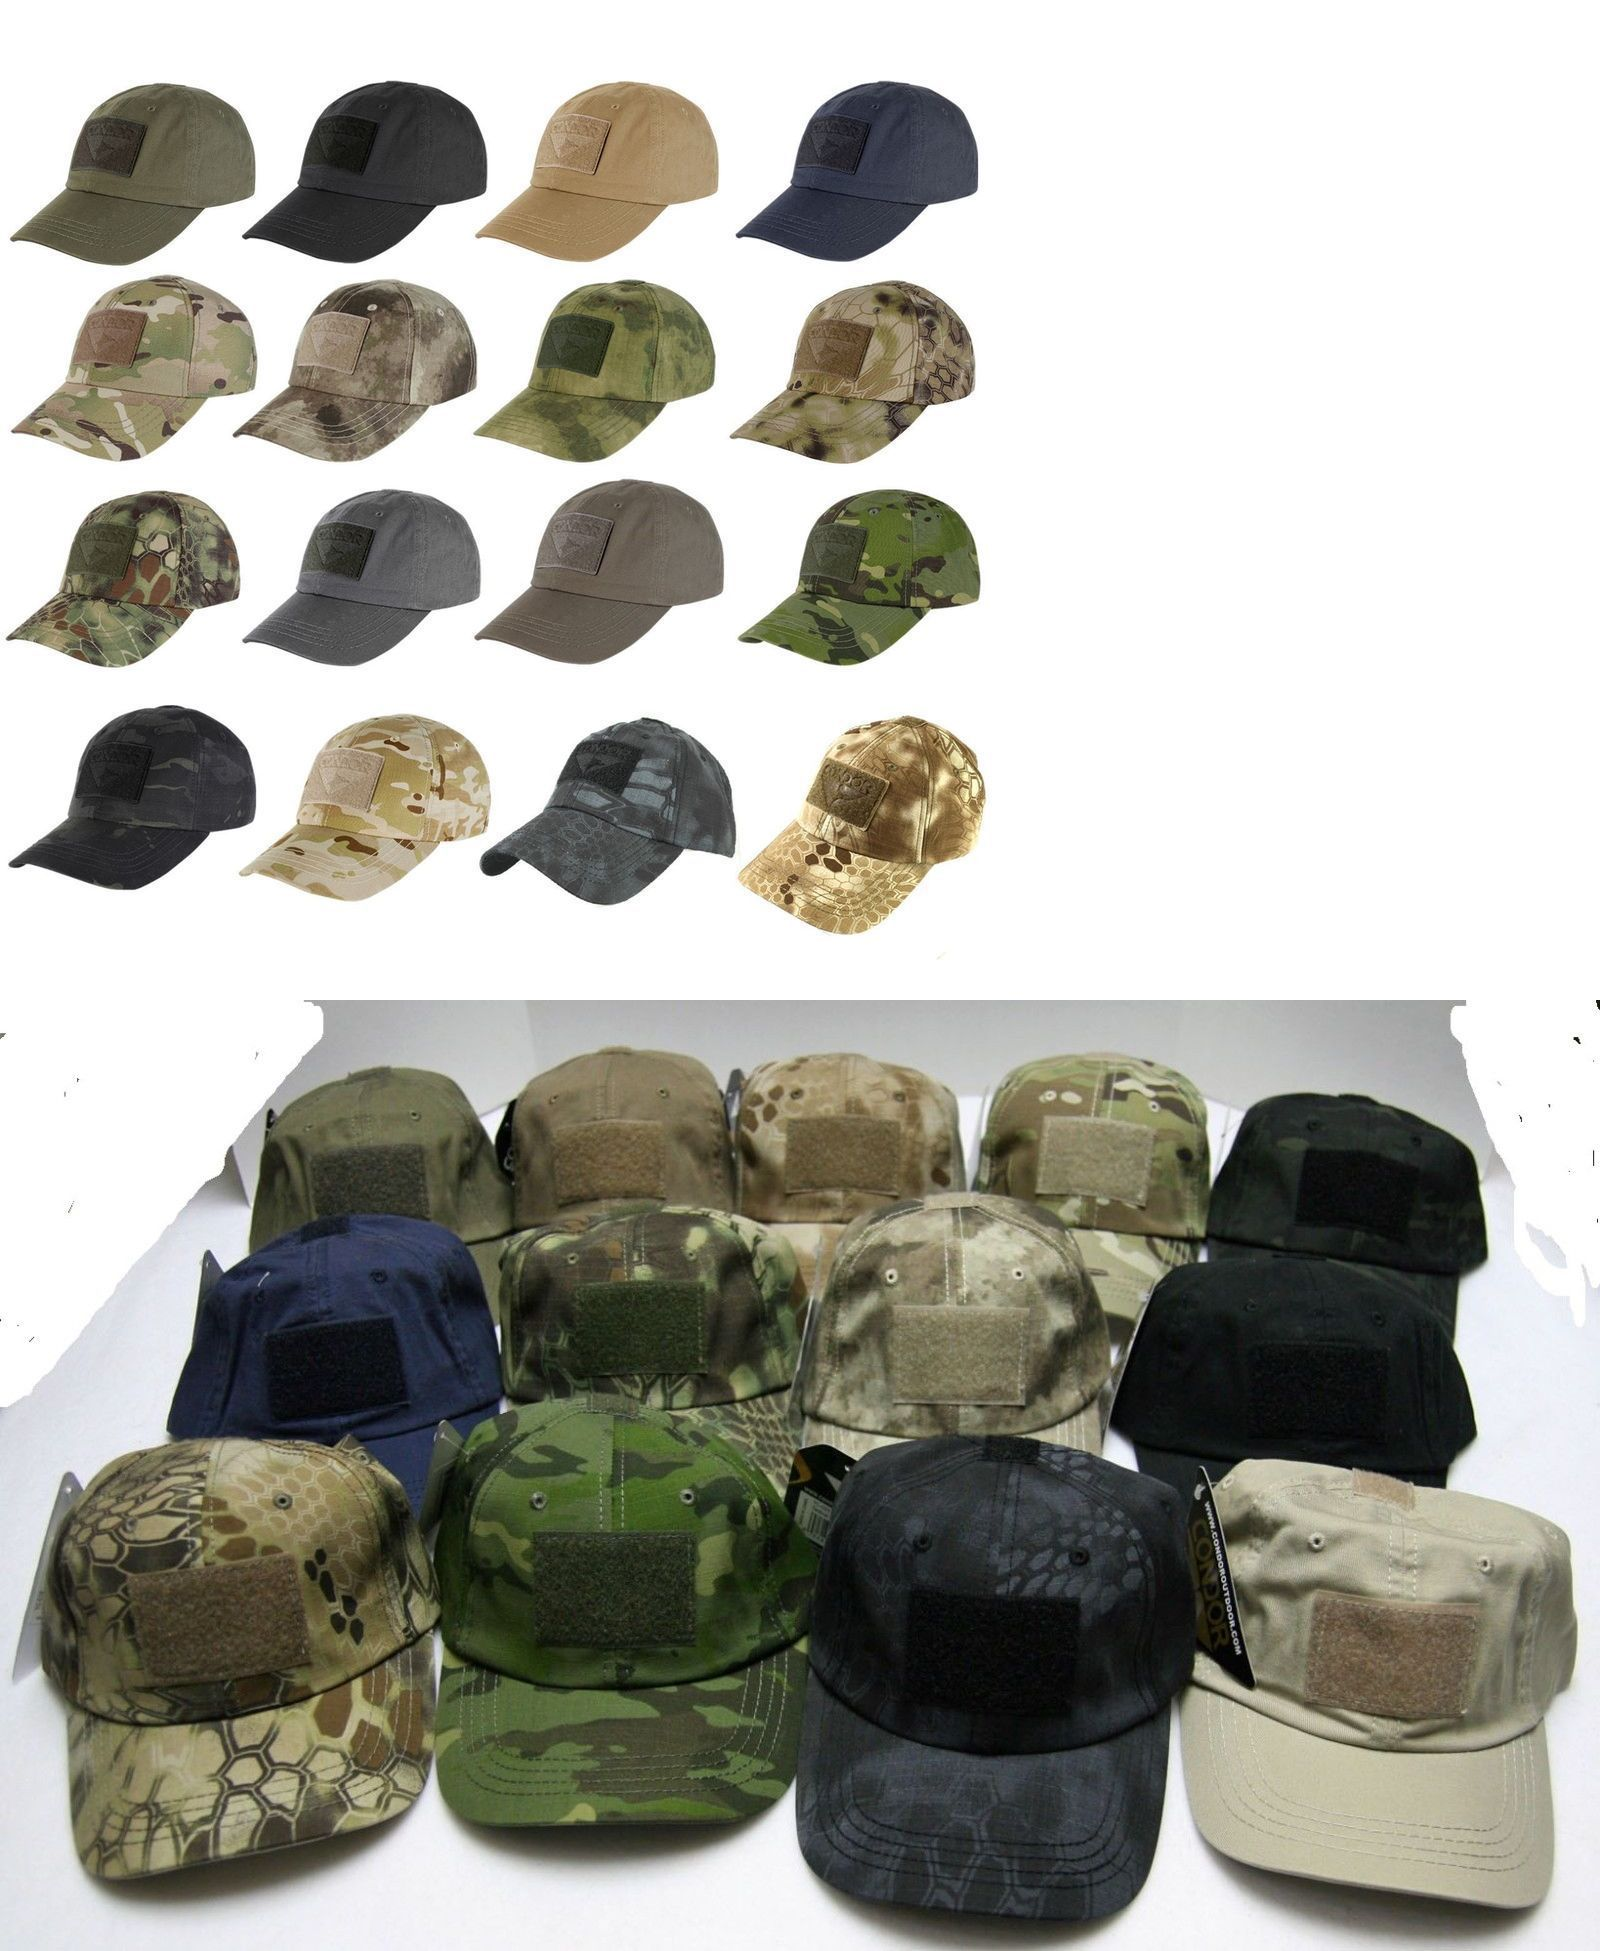 eb52a52c01a Hats and Headwear 177892  Condor Tc Tactical Cap Military Operator Swat  Team Hat Special Ops